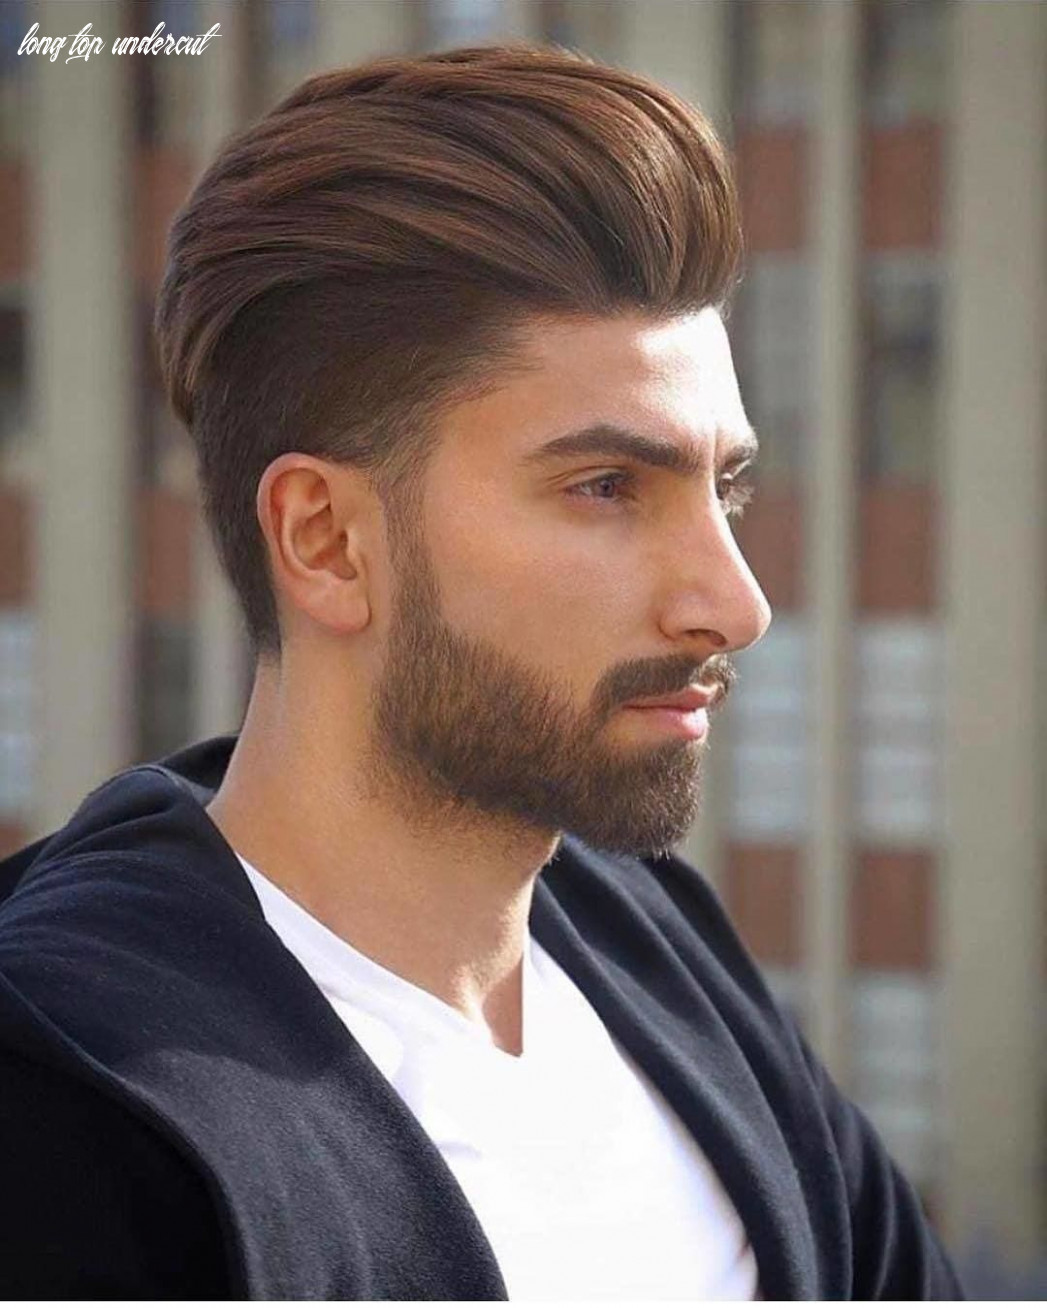 9 Cool Undercut Hairstyles for Men | Undercut hairstyles, Mens ...